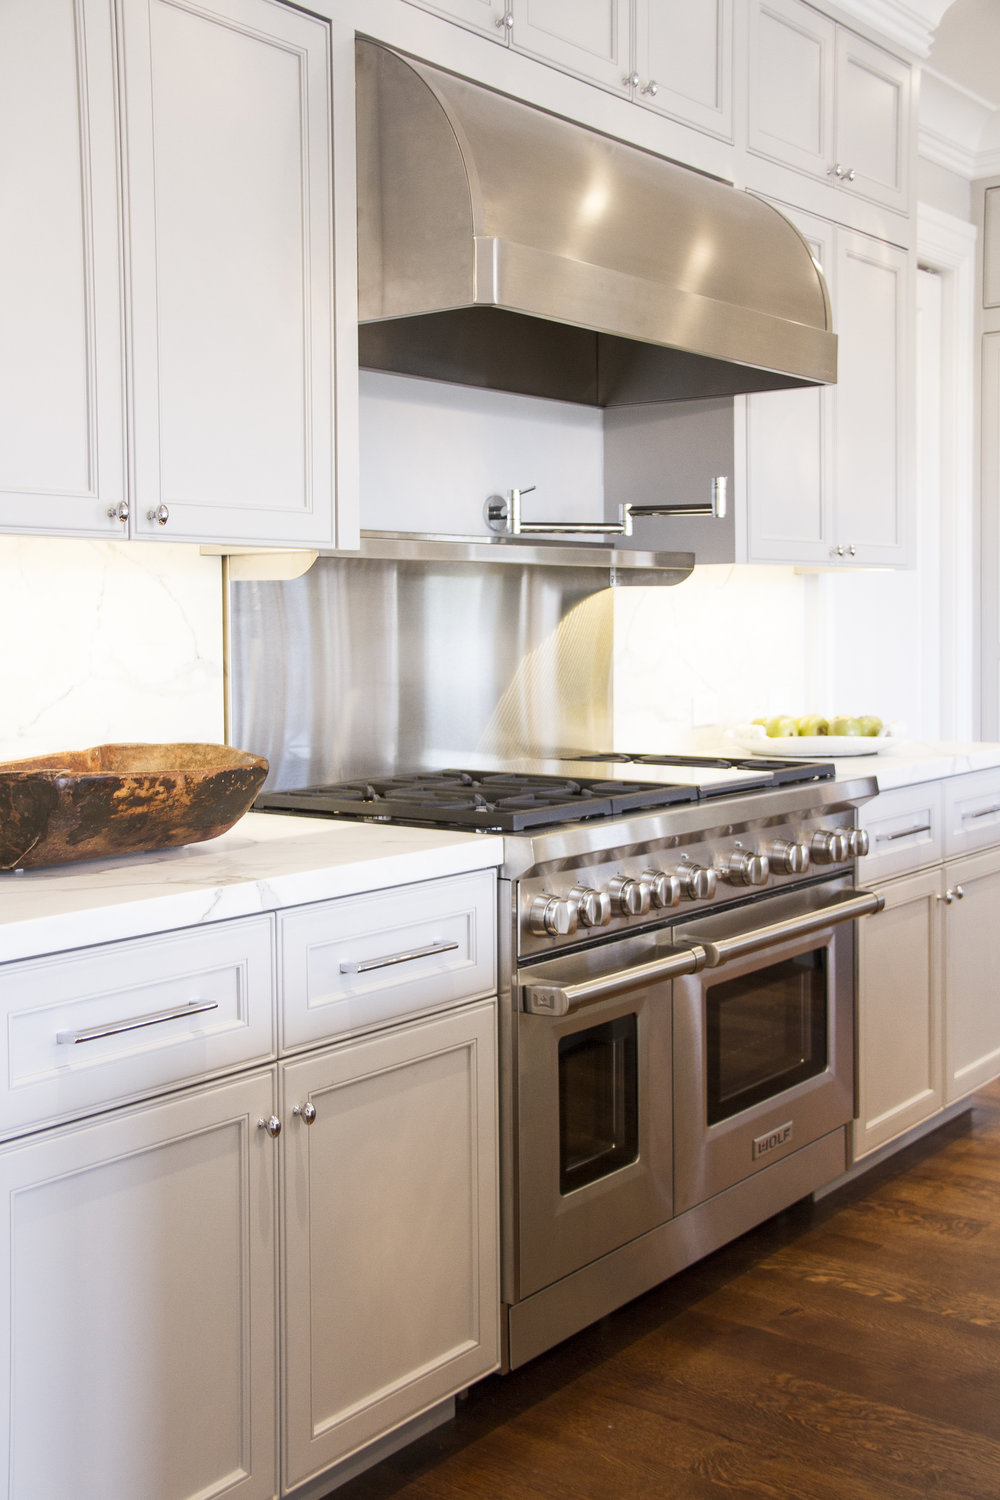 kitchen, white, oven, stainless steel, hardwood floor, marble counters, neutral cabinets